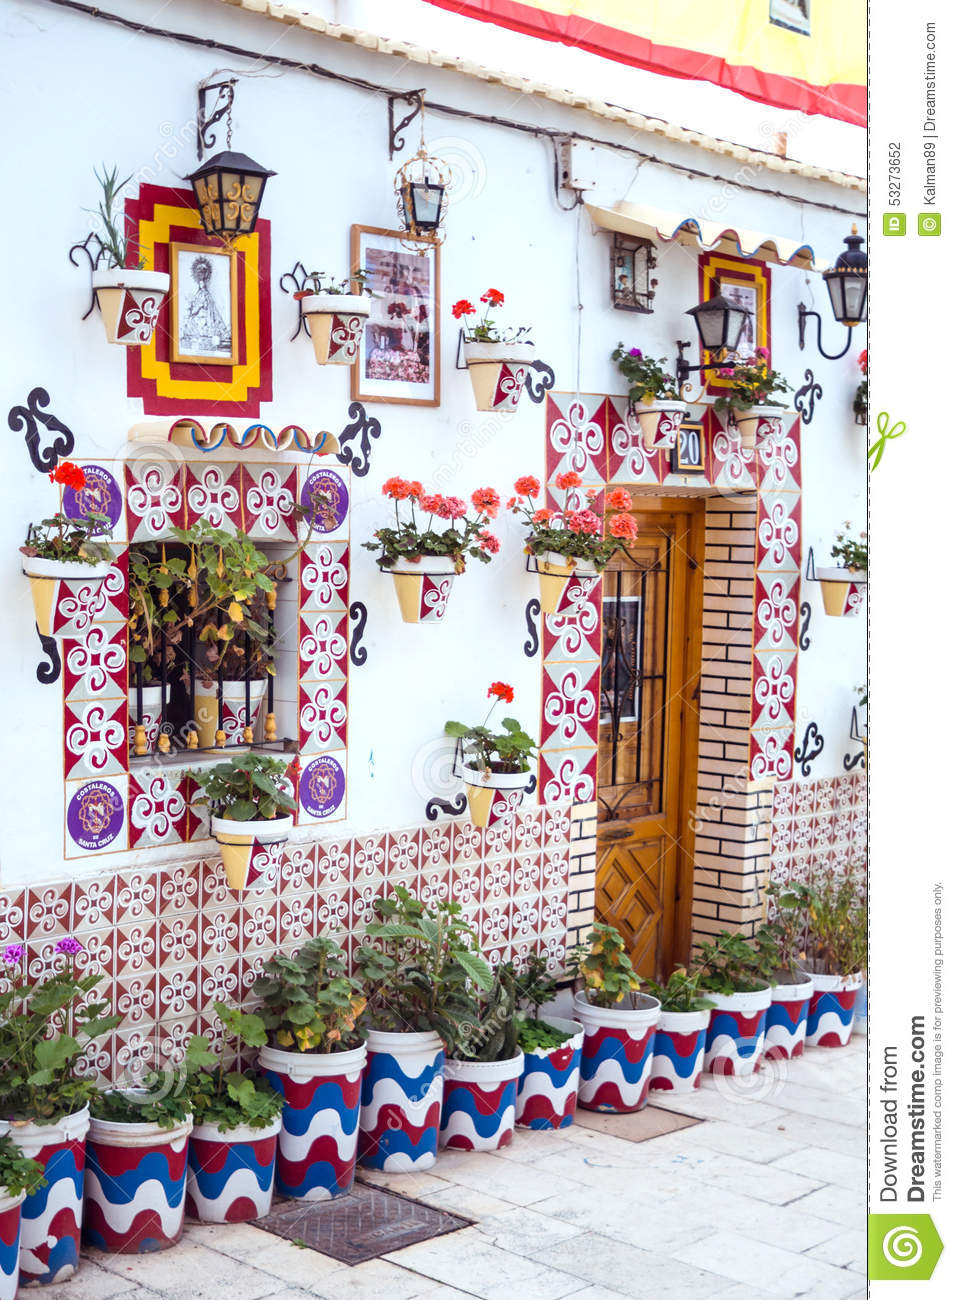 Maison traditionnelle espagnole photo stock image 53273652 for Decoration espagnole maison